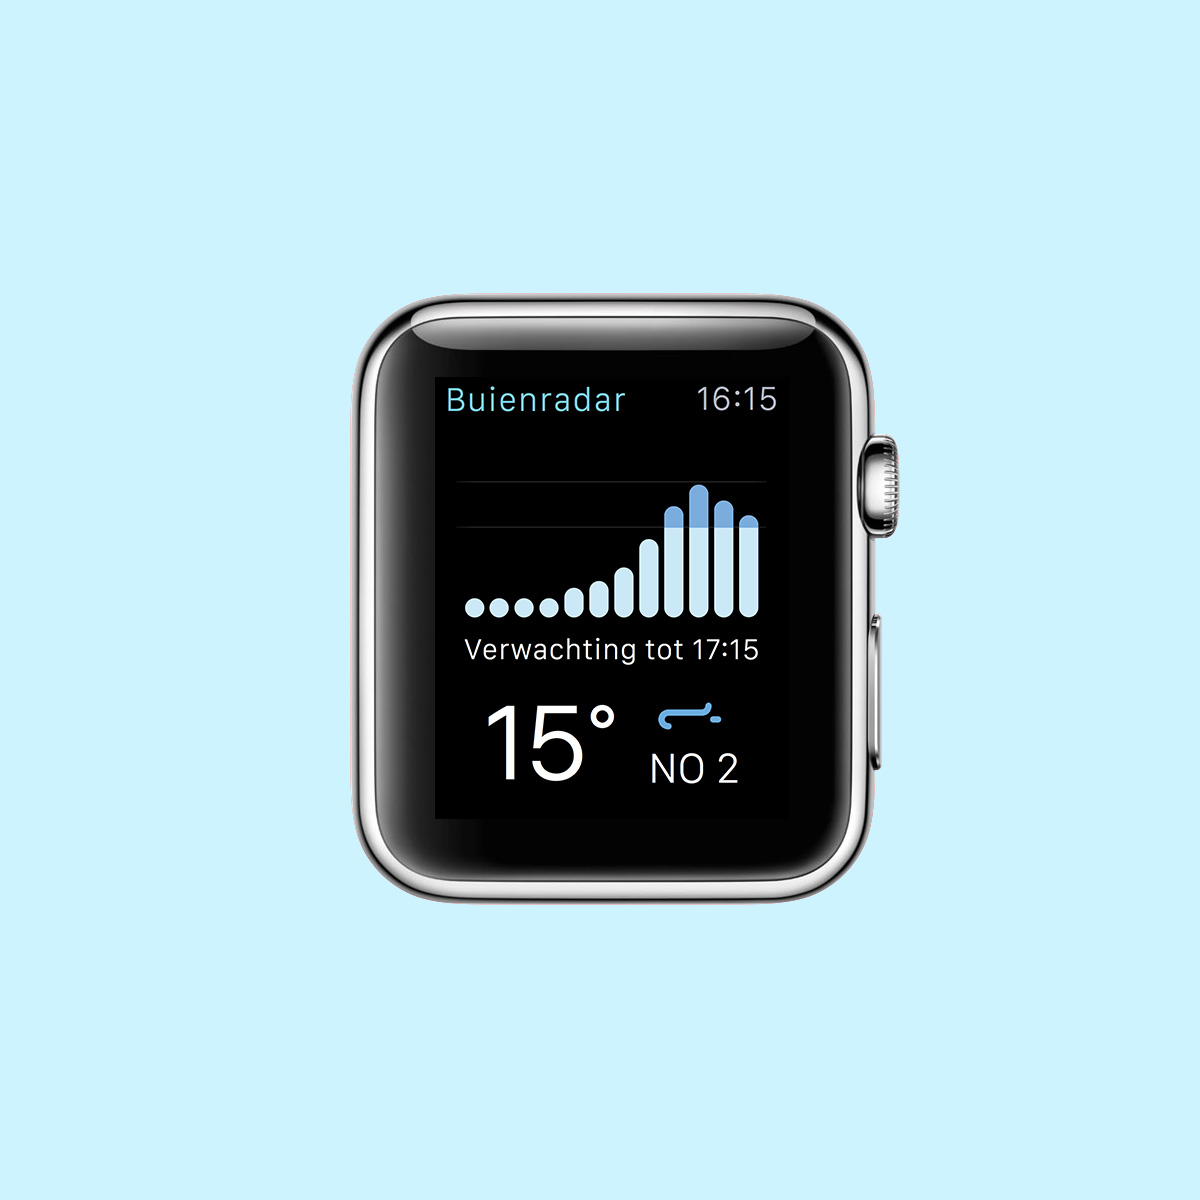 Buienradar apple watch app